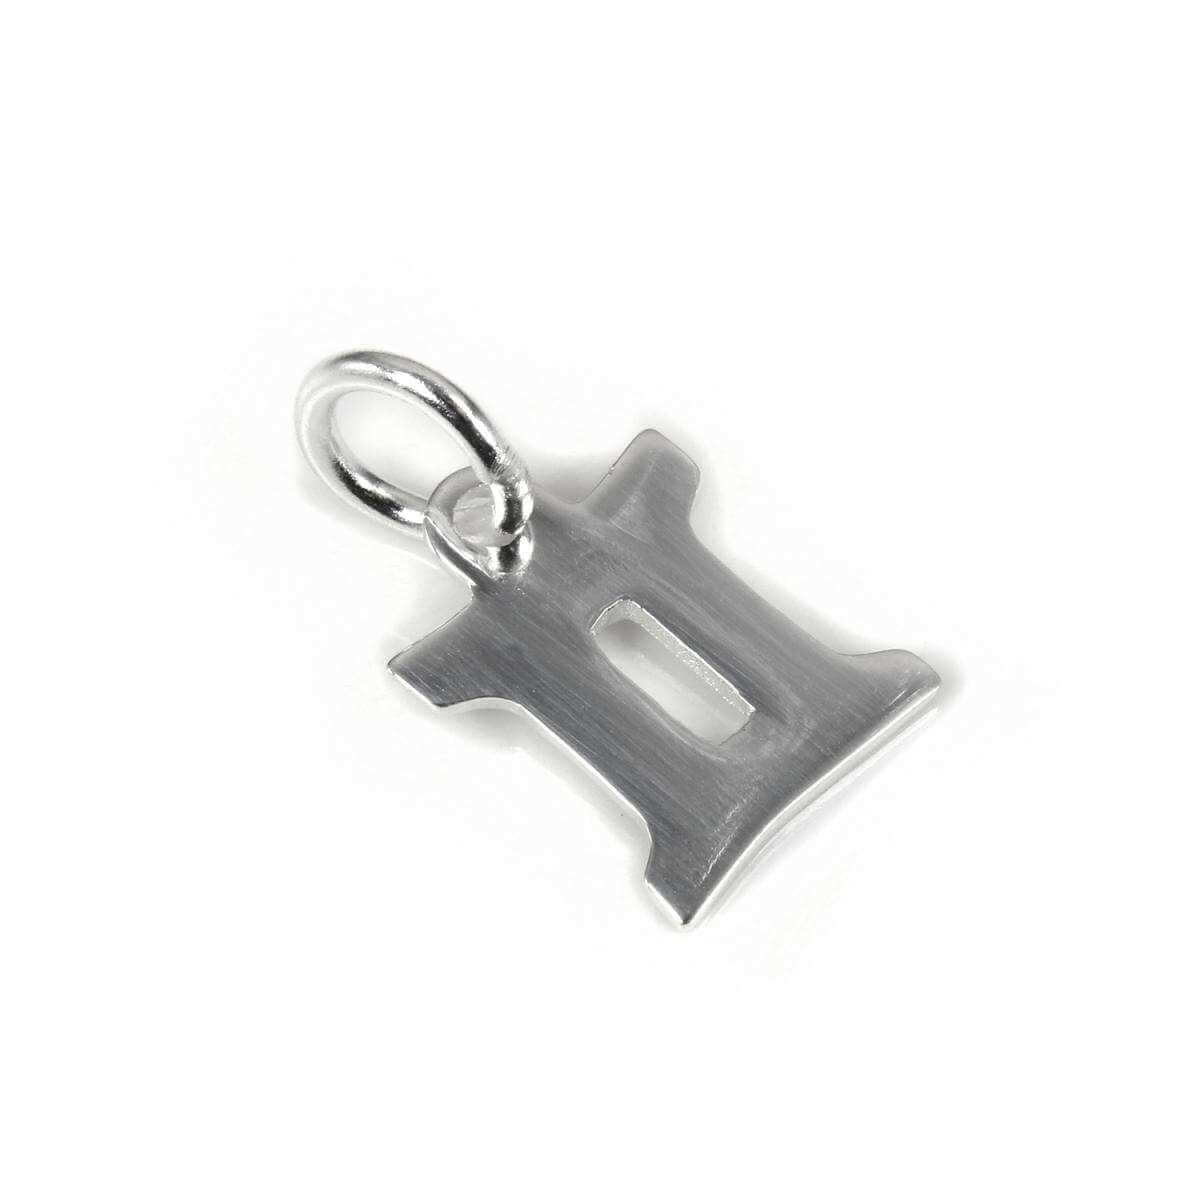 Small Sterling Silver 2D Gemini Symbol Charm